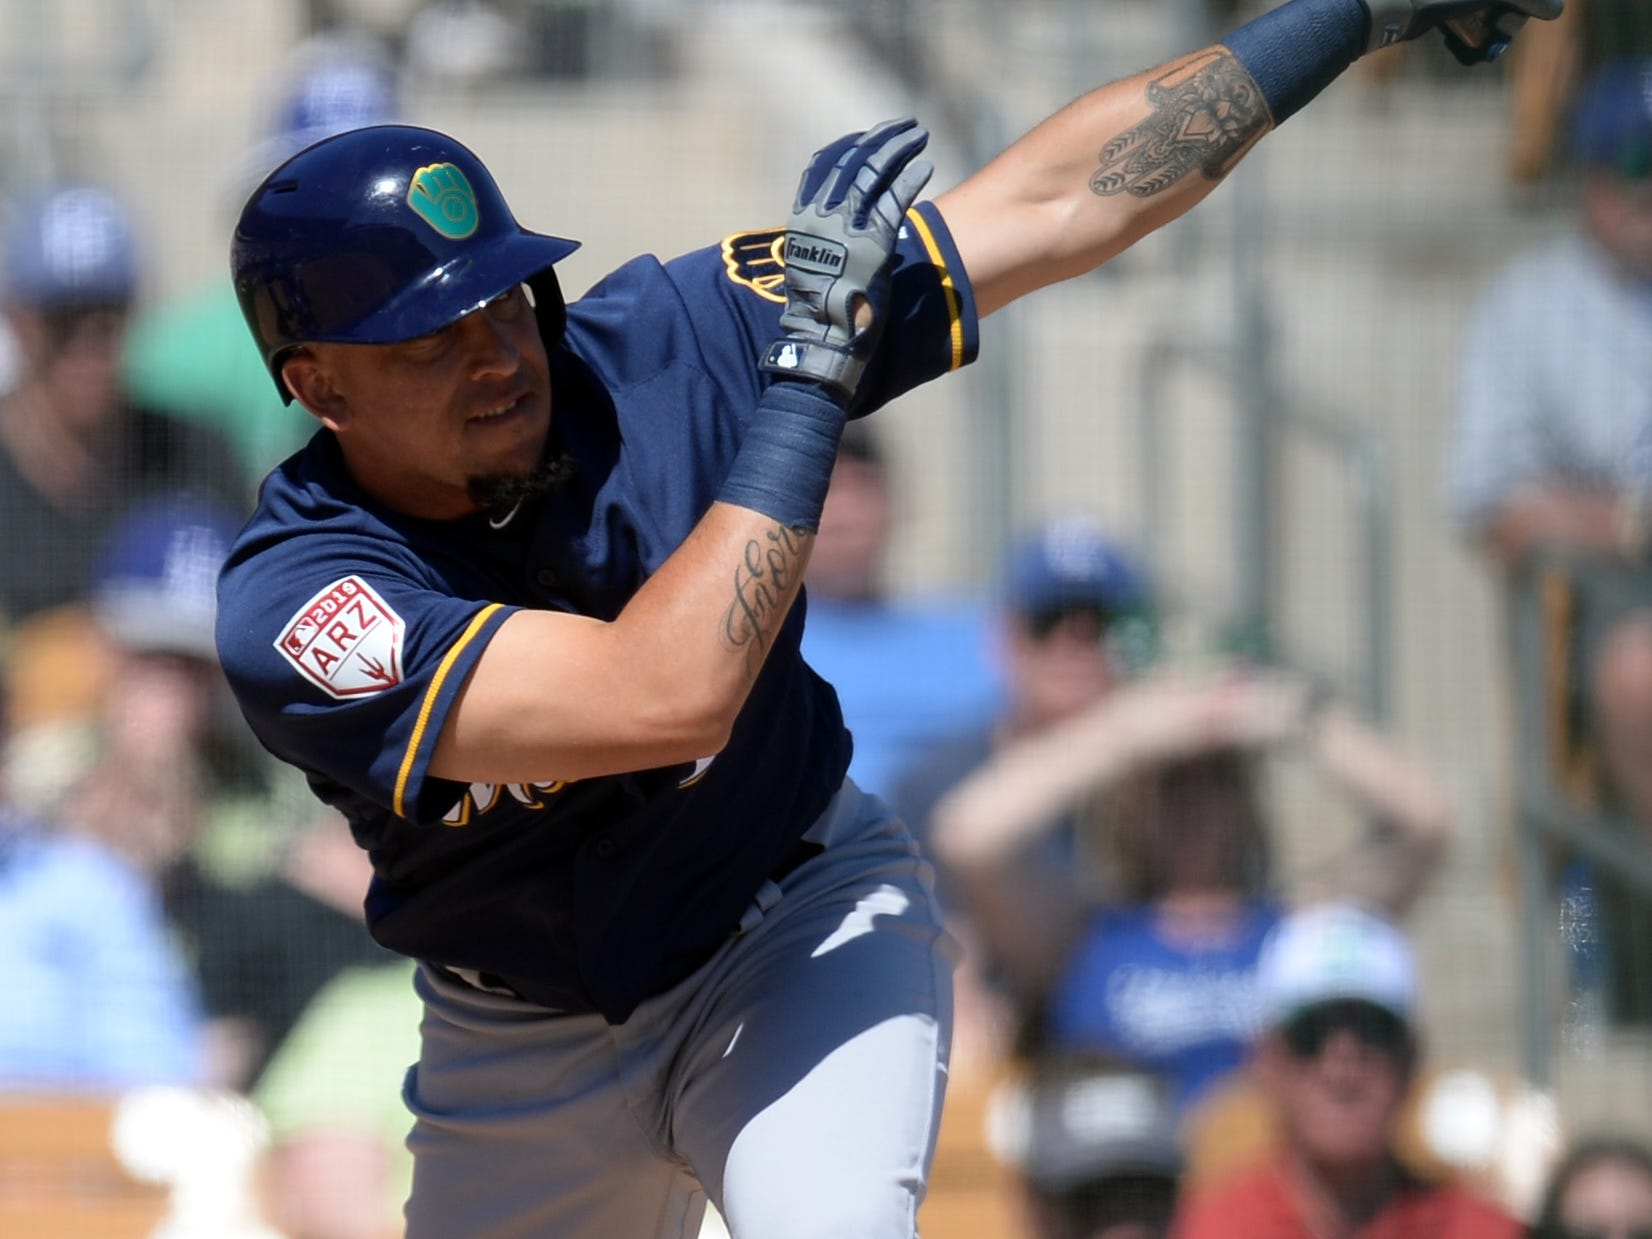 Hernan Perez of the Brewers singles against the Dodgers with two outs in top of the third inning.